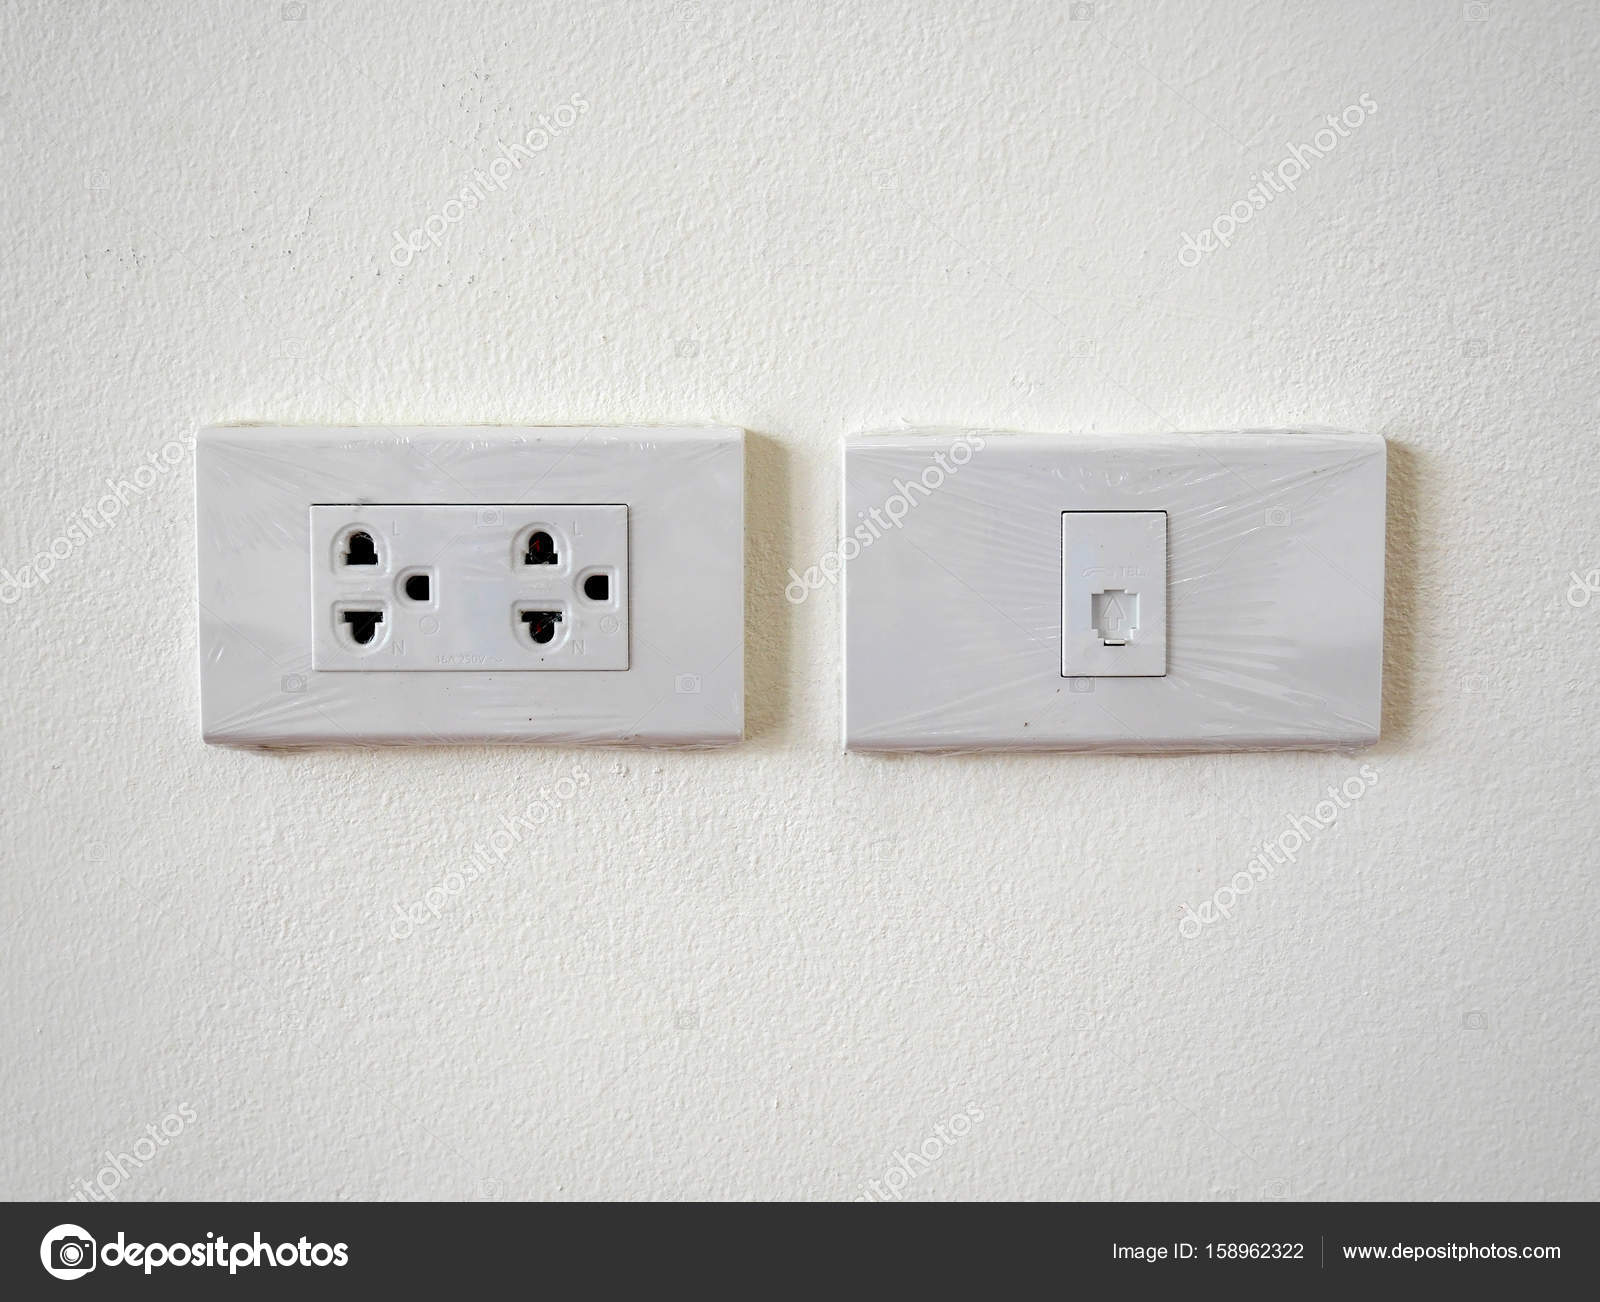 Southeast Asia Power Outlet And Phone Jack Newly Installed With How To Install Electrical Light Switch Plastic Cover Still Attached